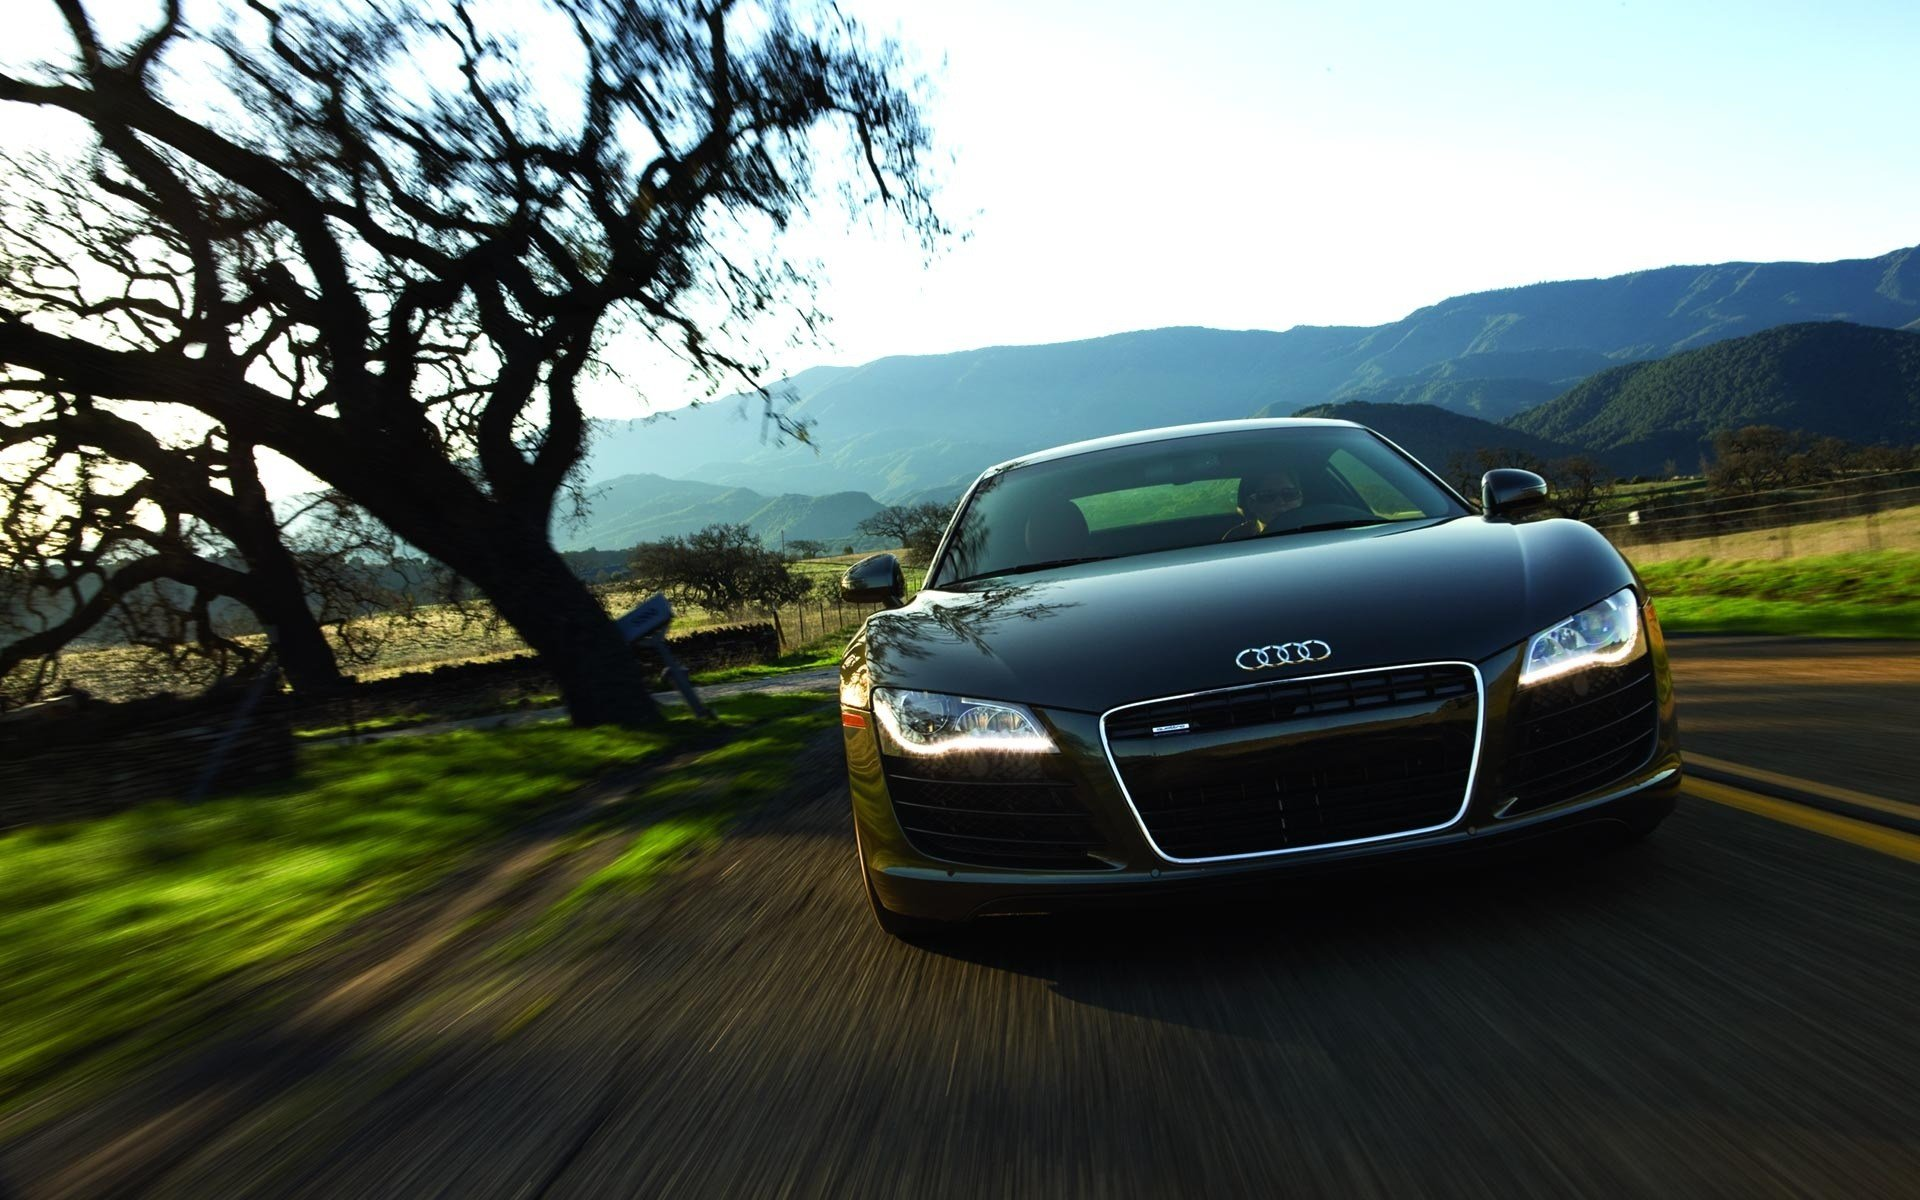 Latest Audi Car Hd Wallpaper On Wallpaperget Com Free Download